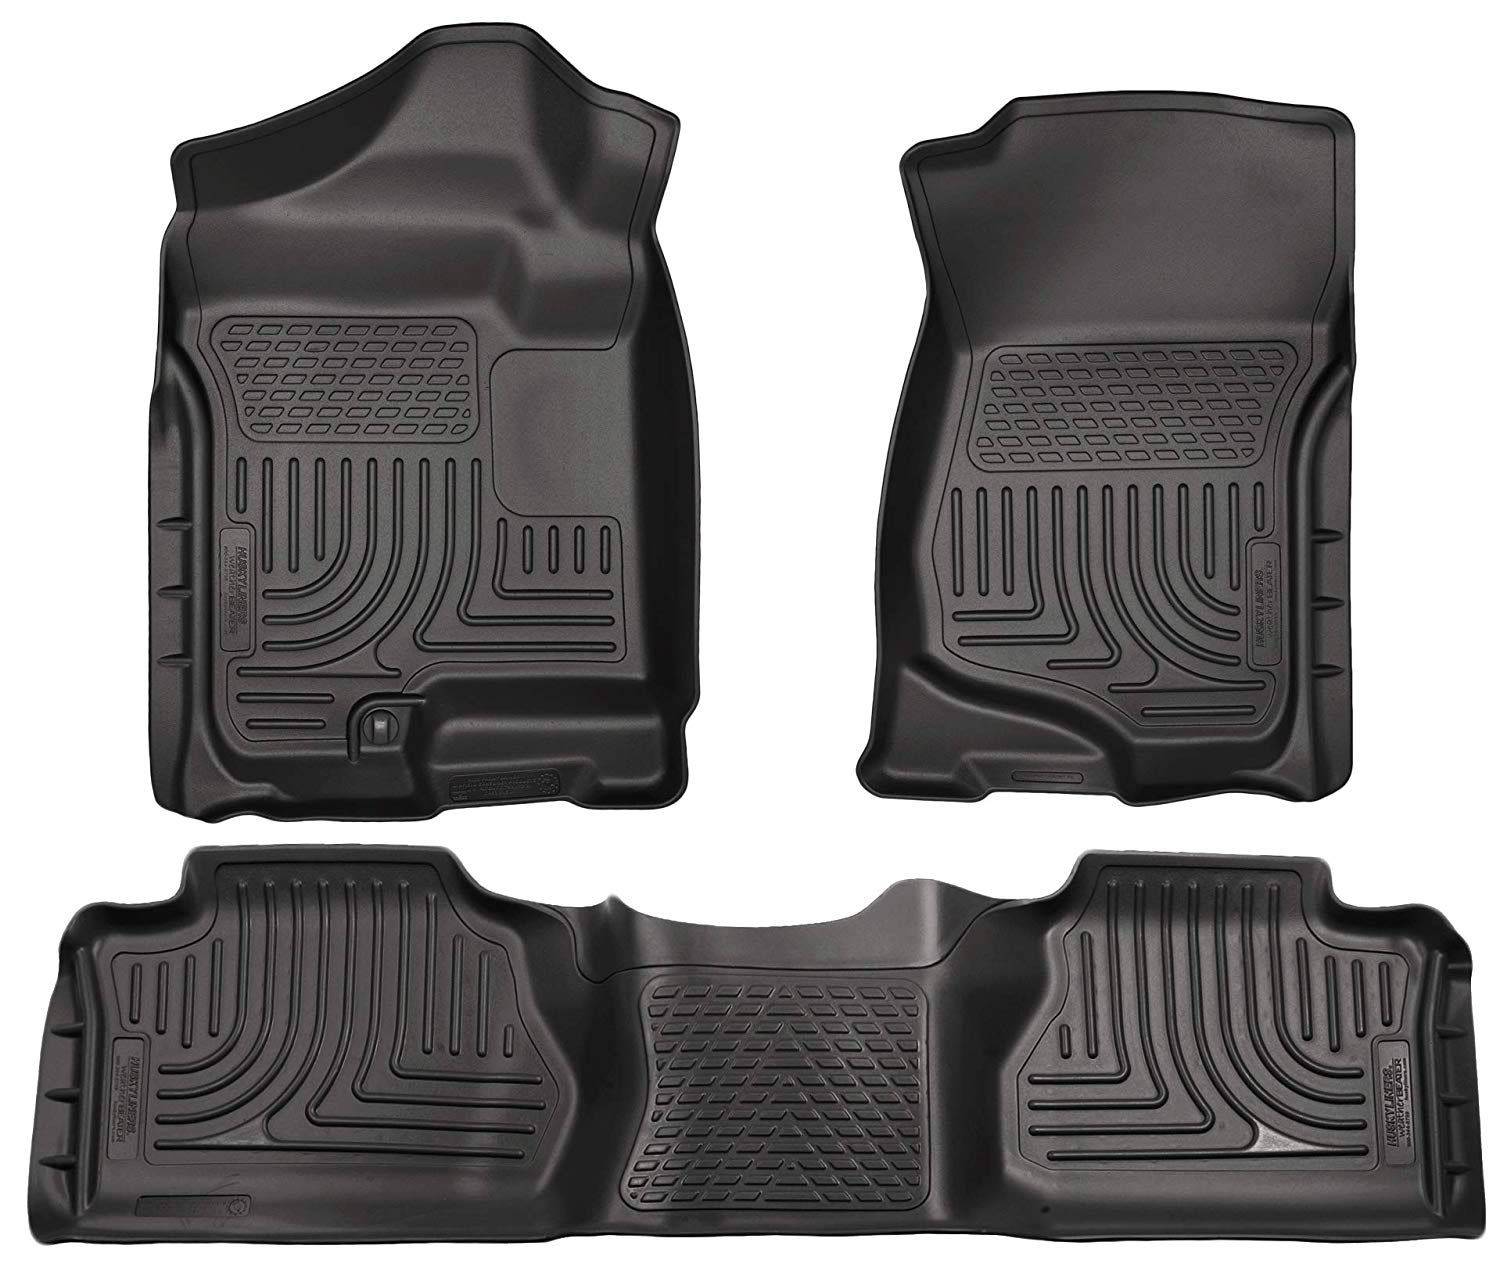 Husky Liners Frontand2nd Seat Floor Liners Fits 07 13 Silverado Sierra Extended Click On The Image For Additiona In 2020 Floor Liners Gmc Sierra Gmc Sierra Crew Cab